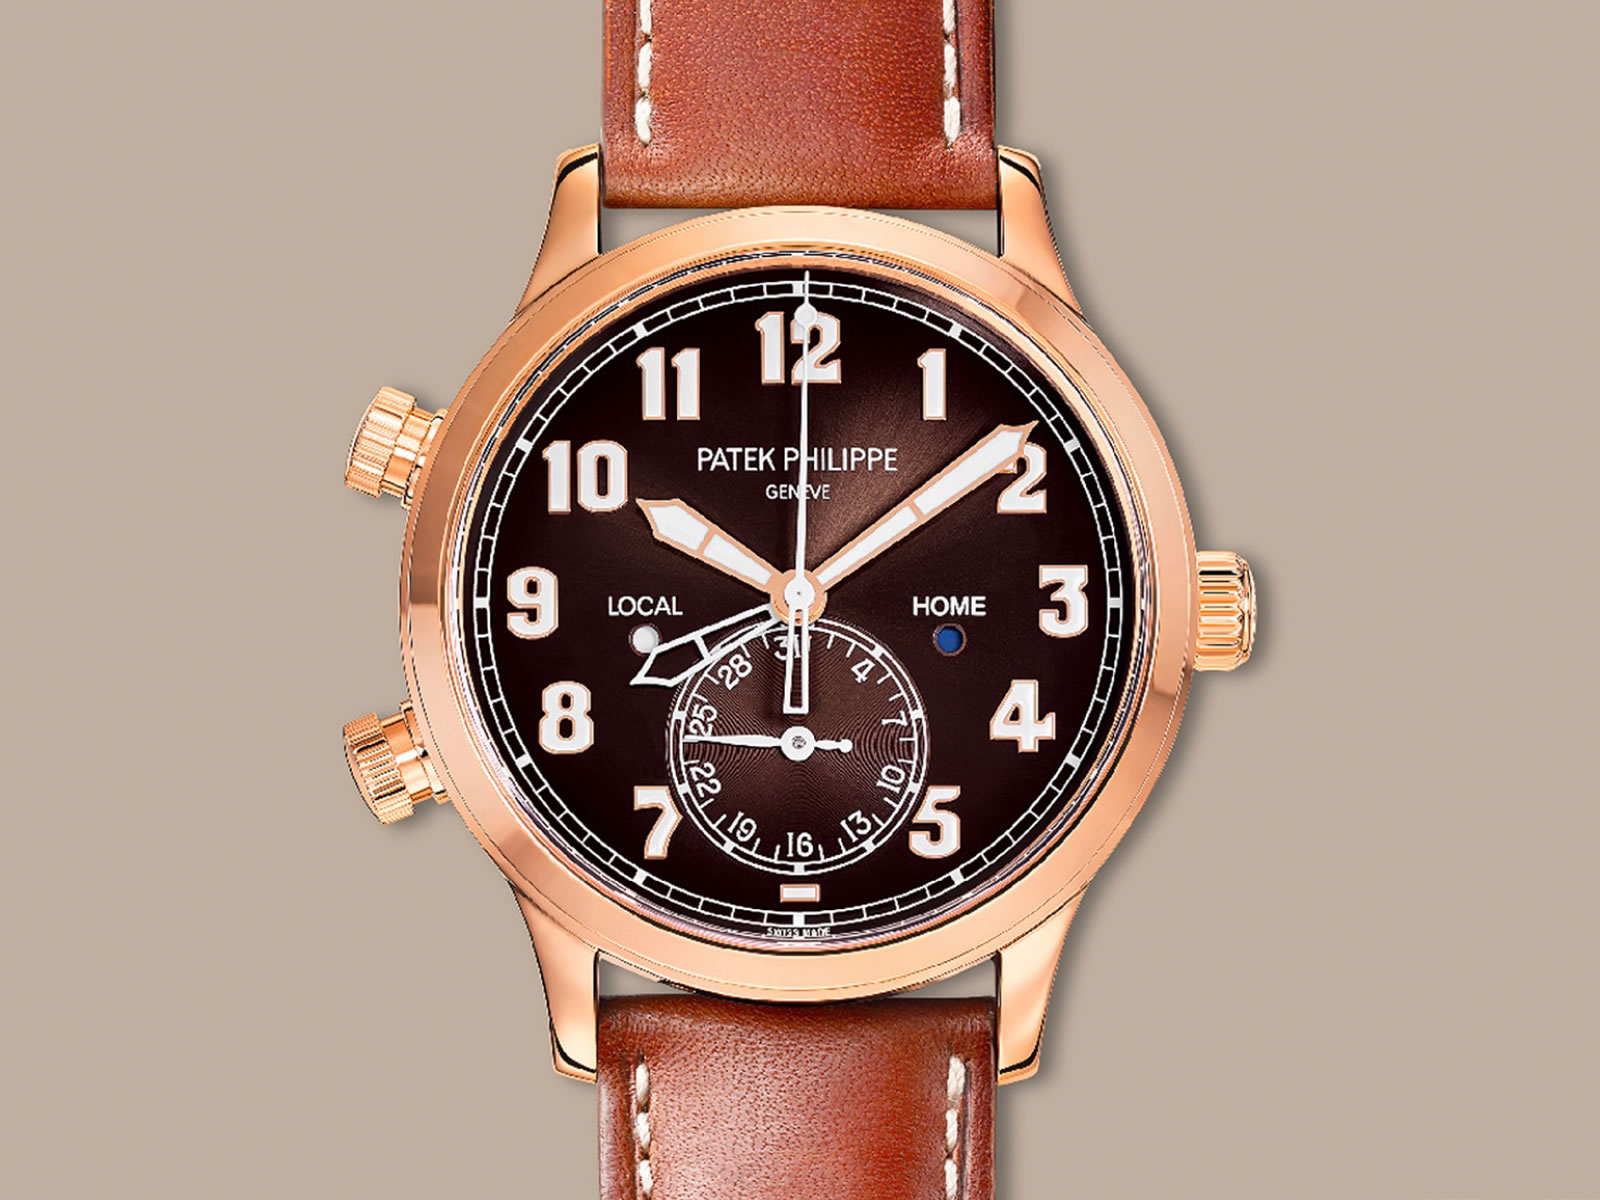 5524r-patek-philippe-calatrava-pilot-travel-time-3.jpg